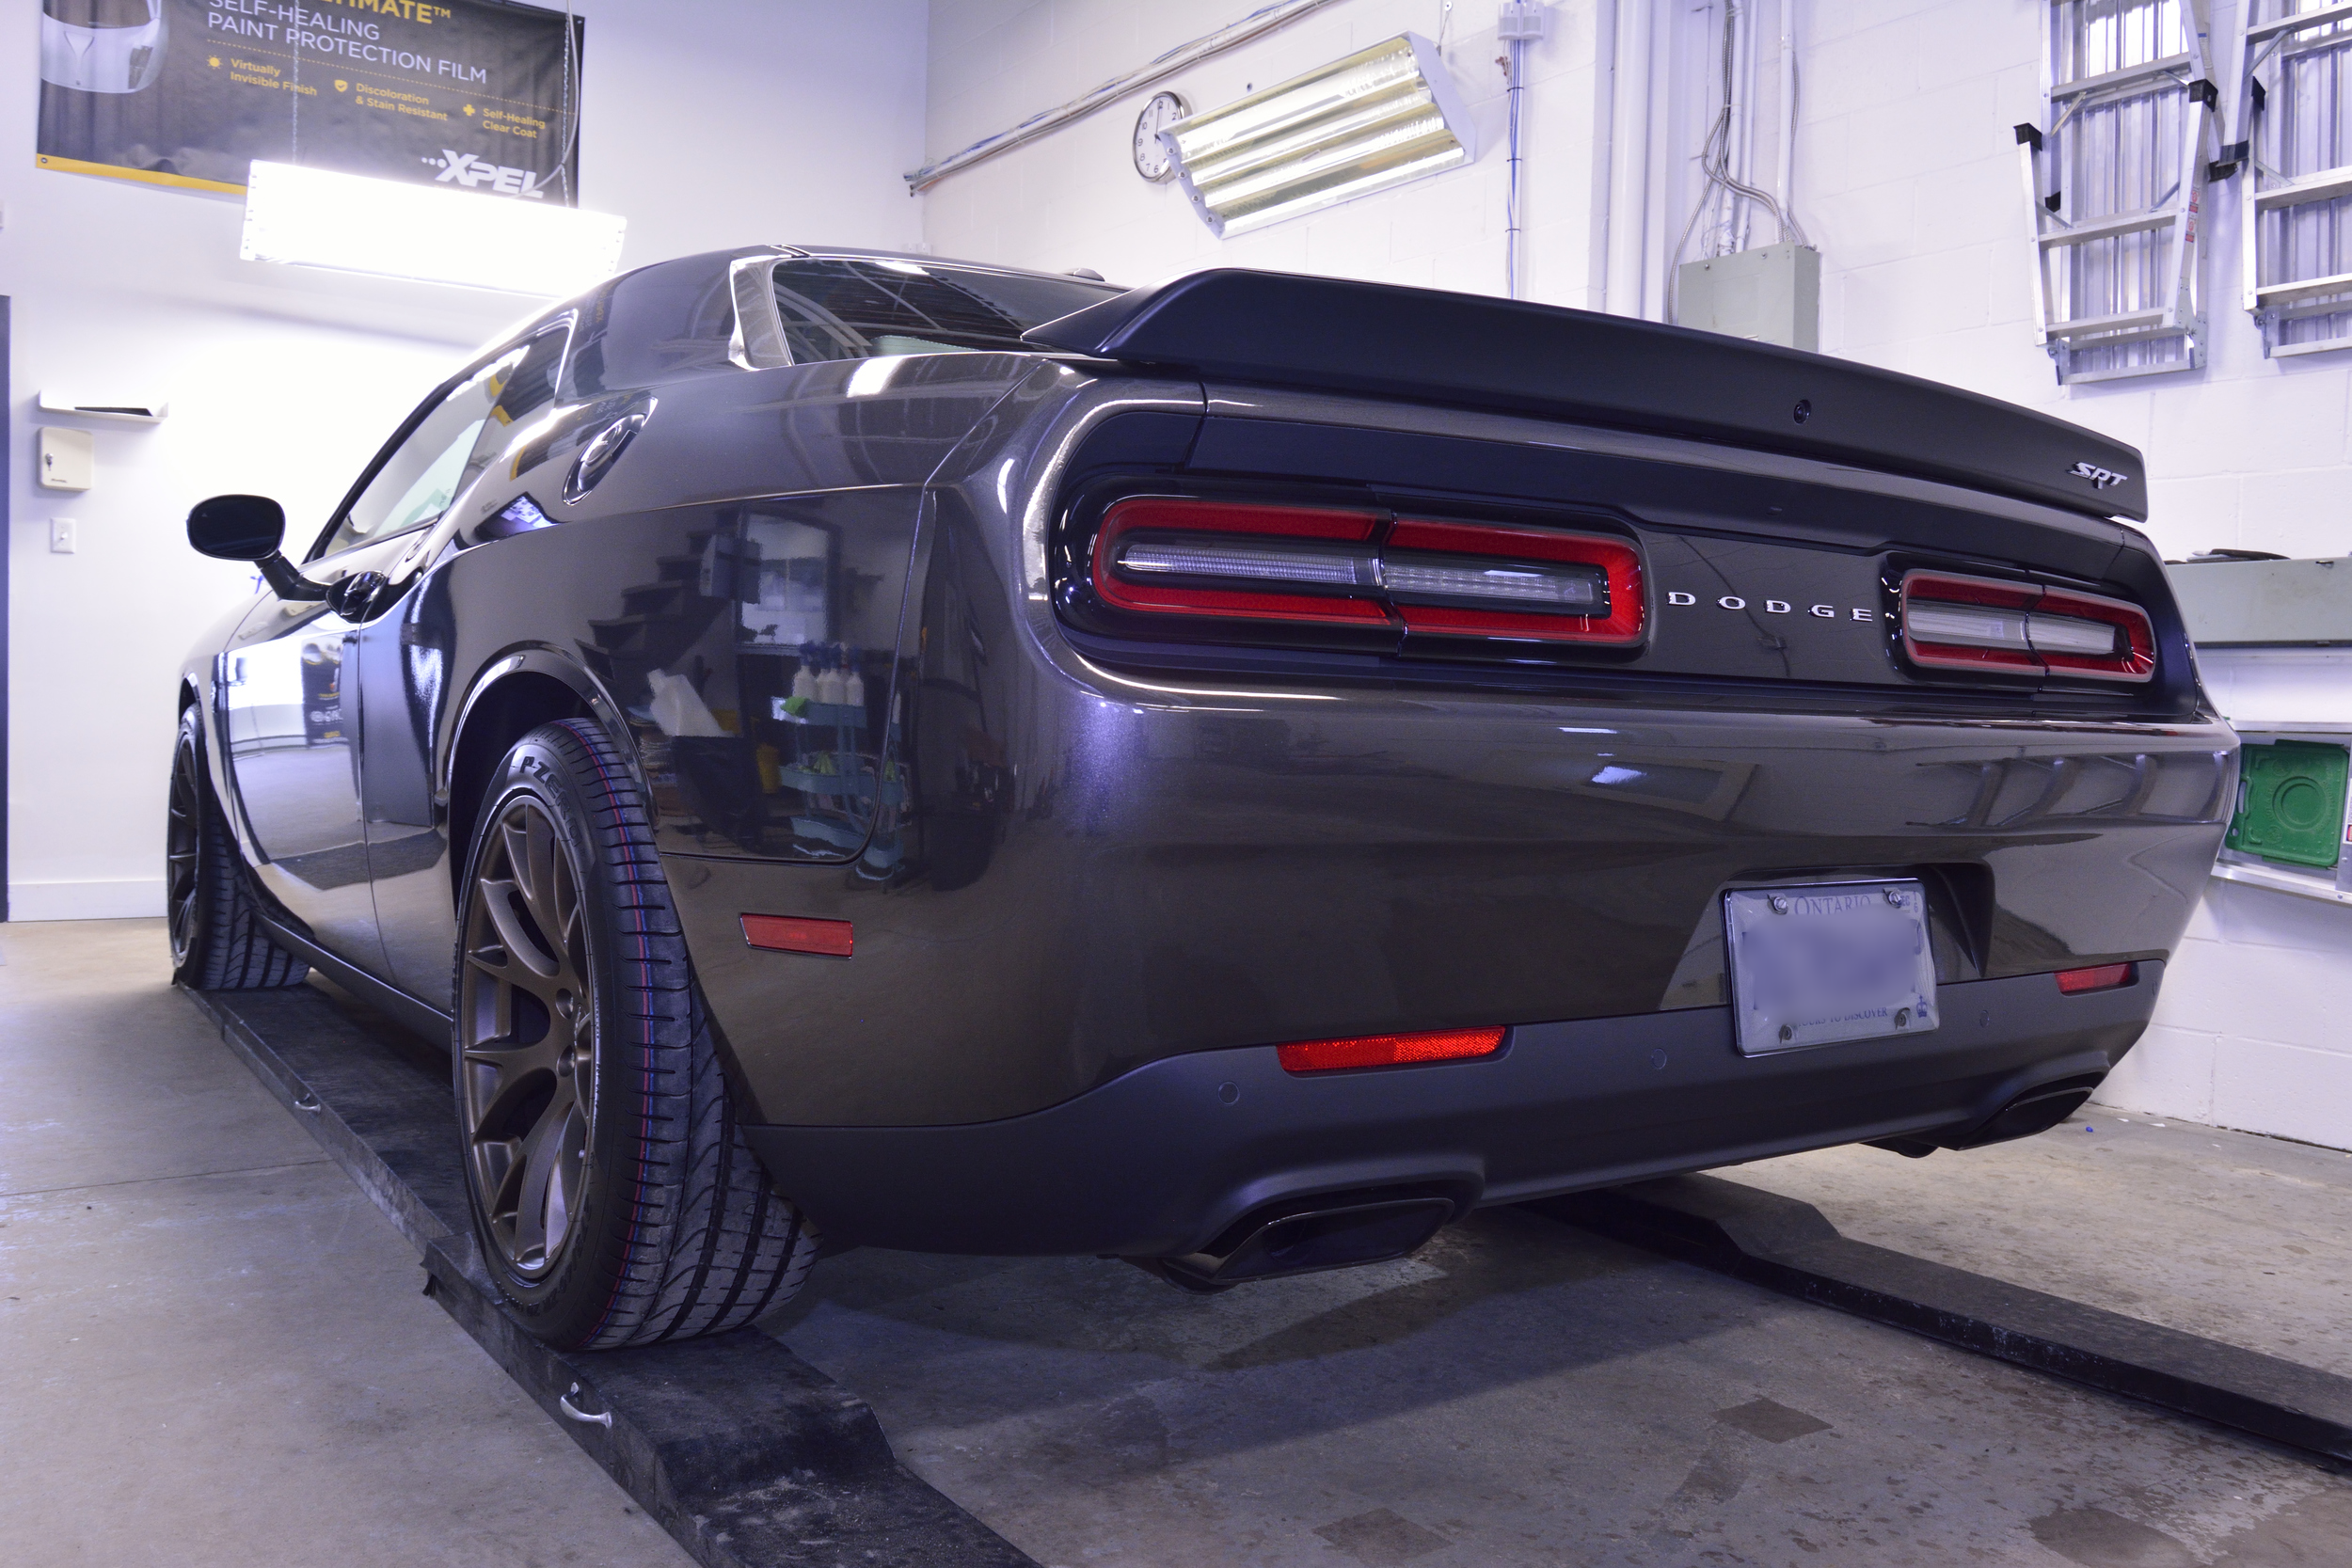 Dodge Challenger Hellcat New Vehicle Prep with 22PLE Glass Coating Protection  + XPEL Ultimate PPF Installation + Satin Black Hood Wrap